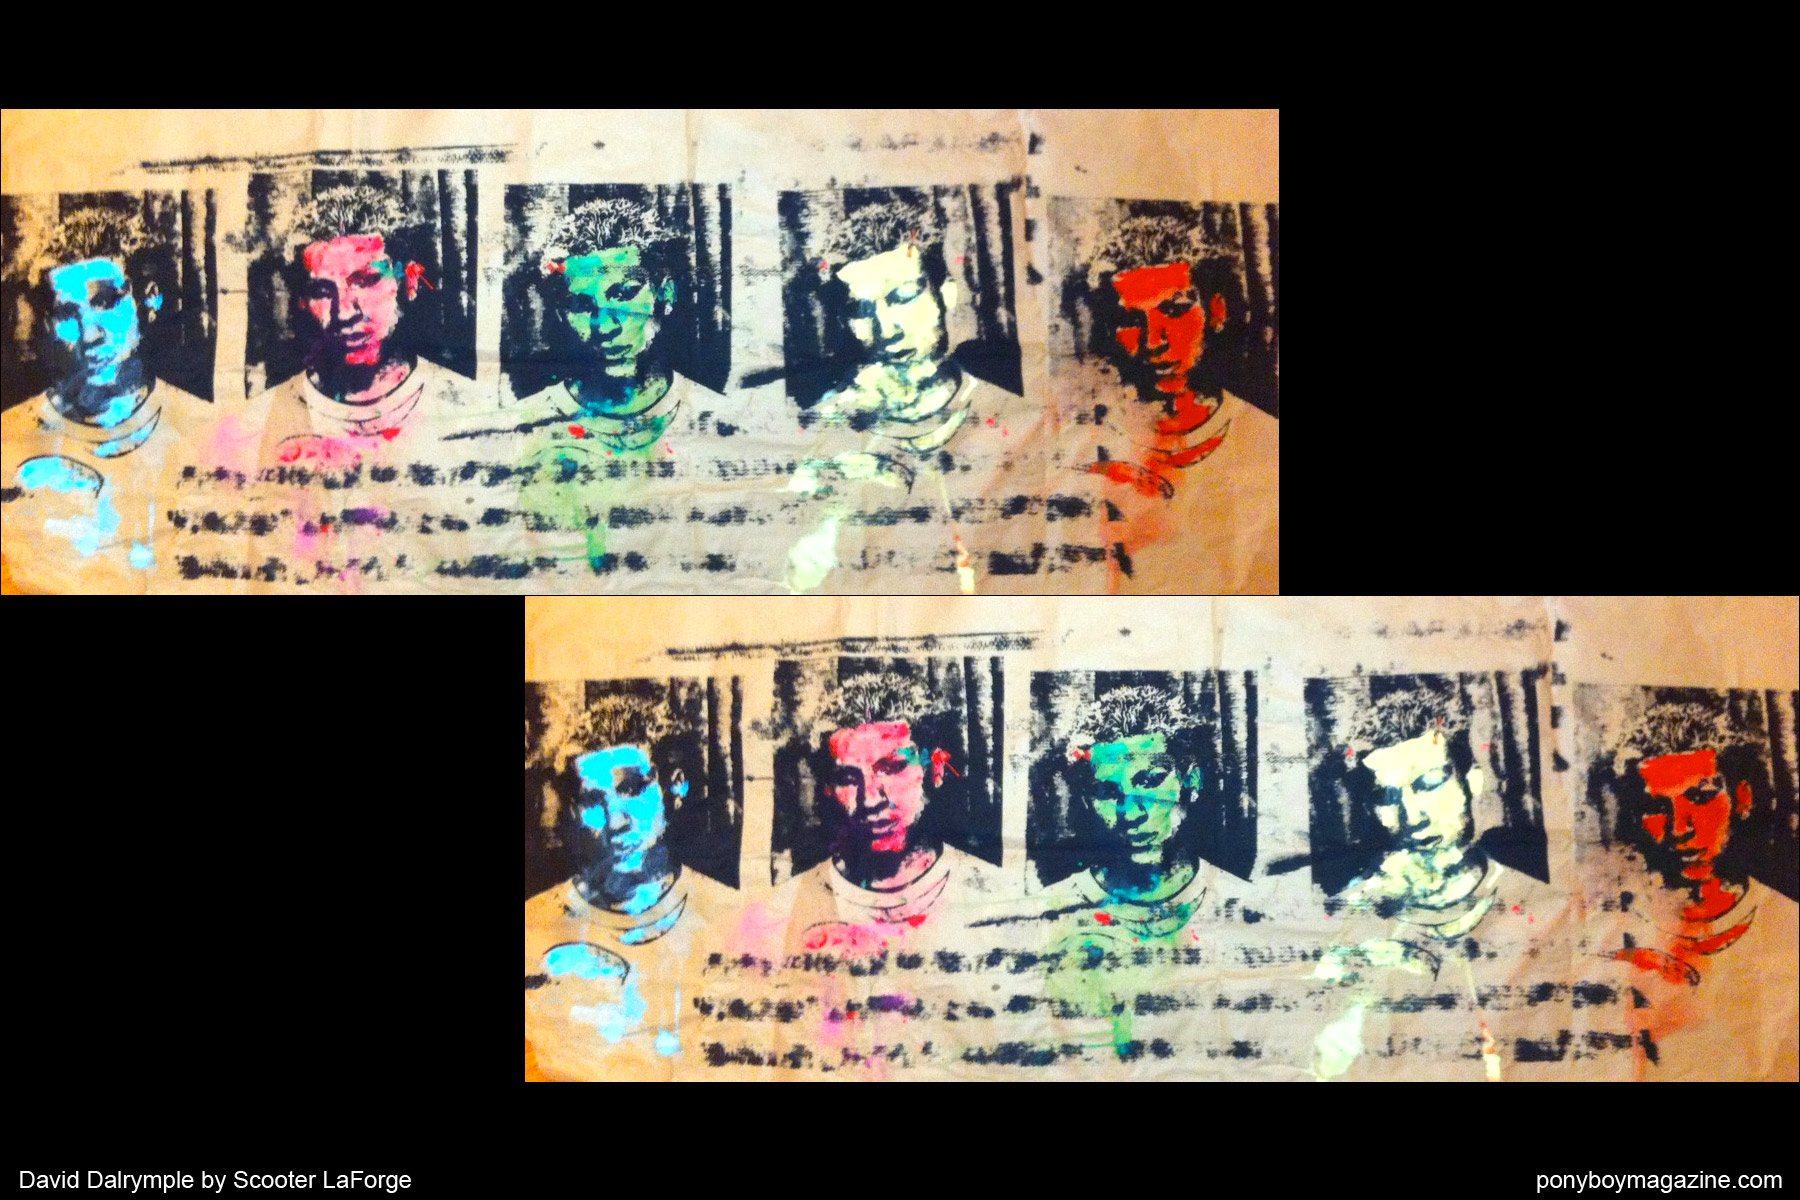 A collage of David Dalrymple by artist Scooter Laforge. Ponyboy Magazine.